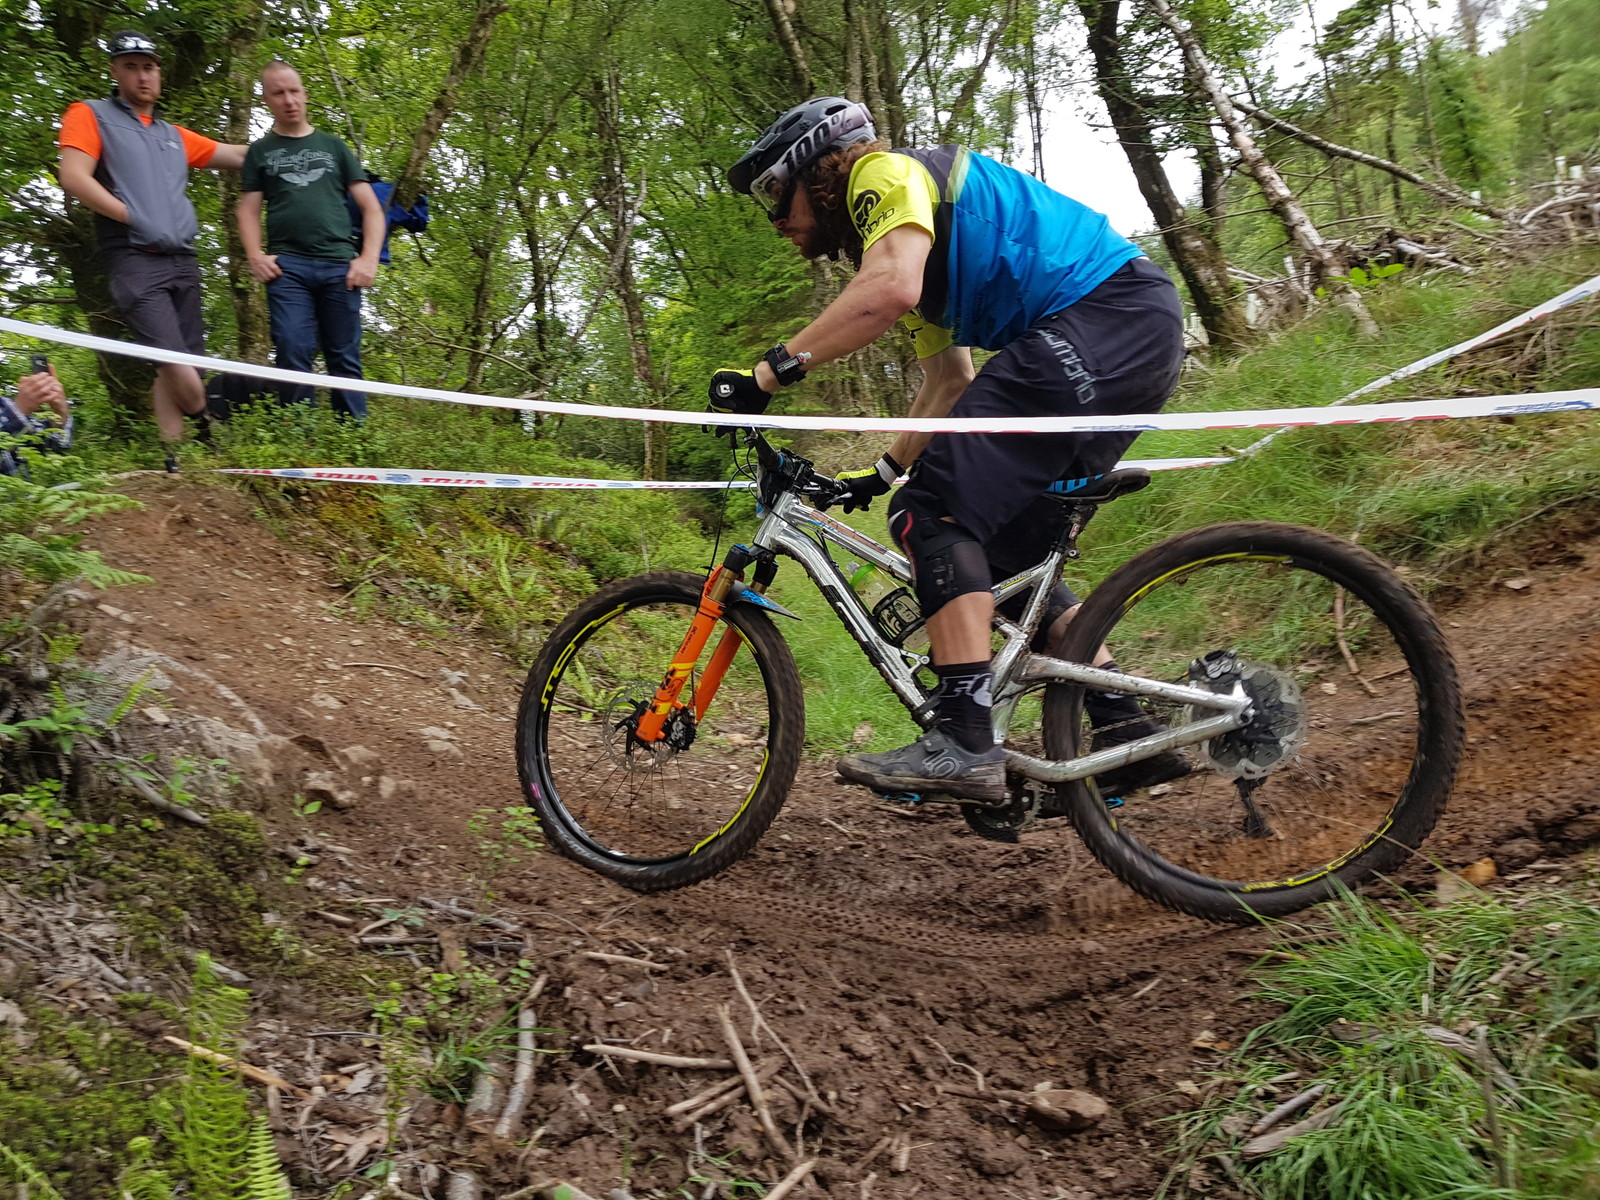 Wyn Masters' GT Sanction G-ed Out - G-out Project: EWS Ireland 2017 - Mountain Biking Pictures - Vital MTB